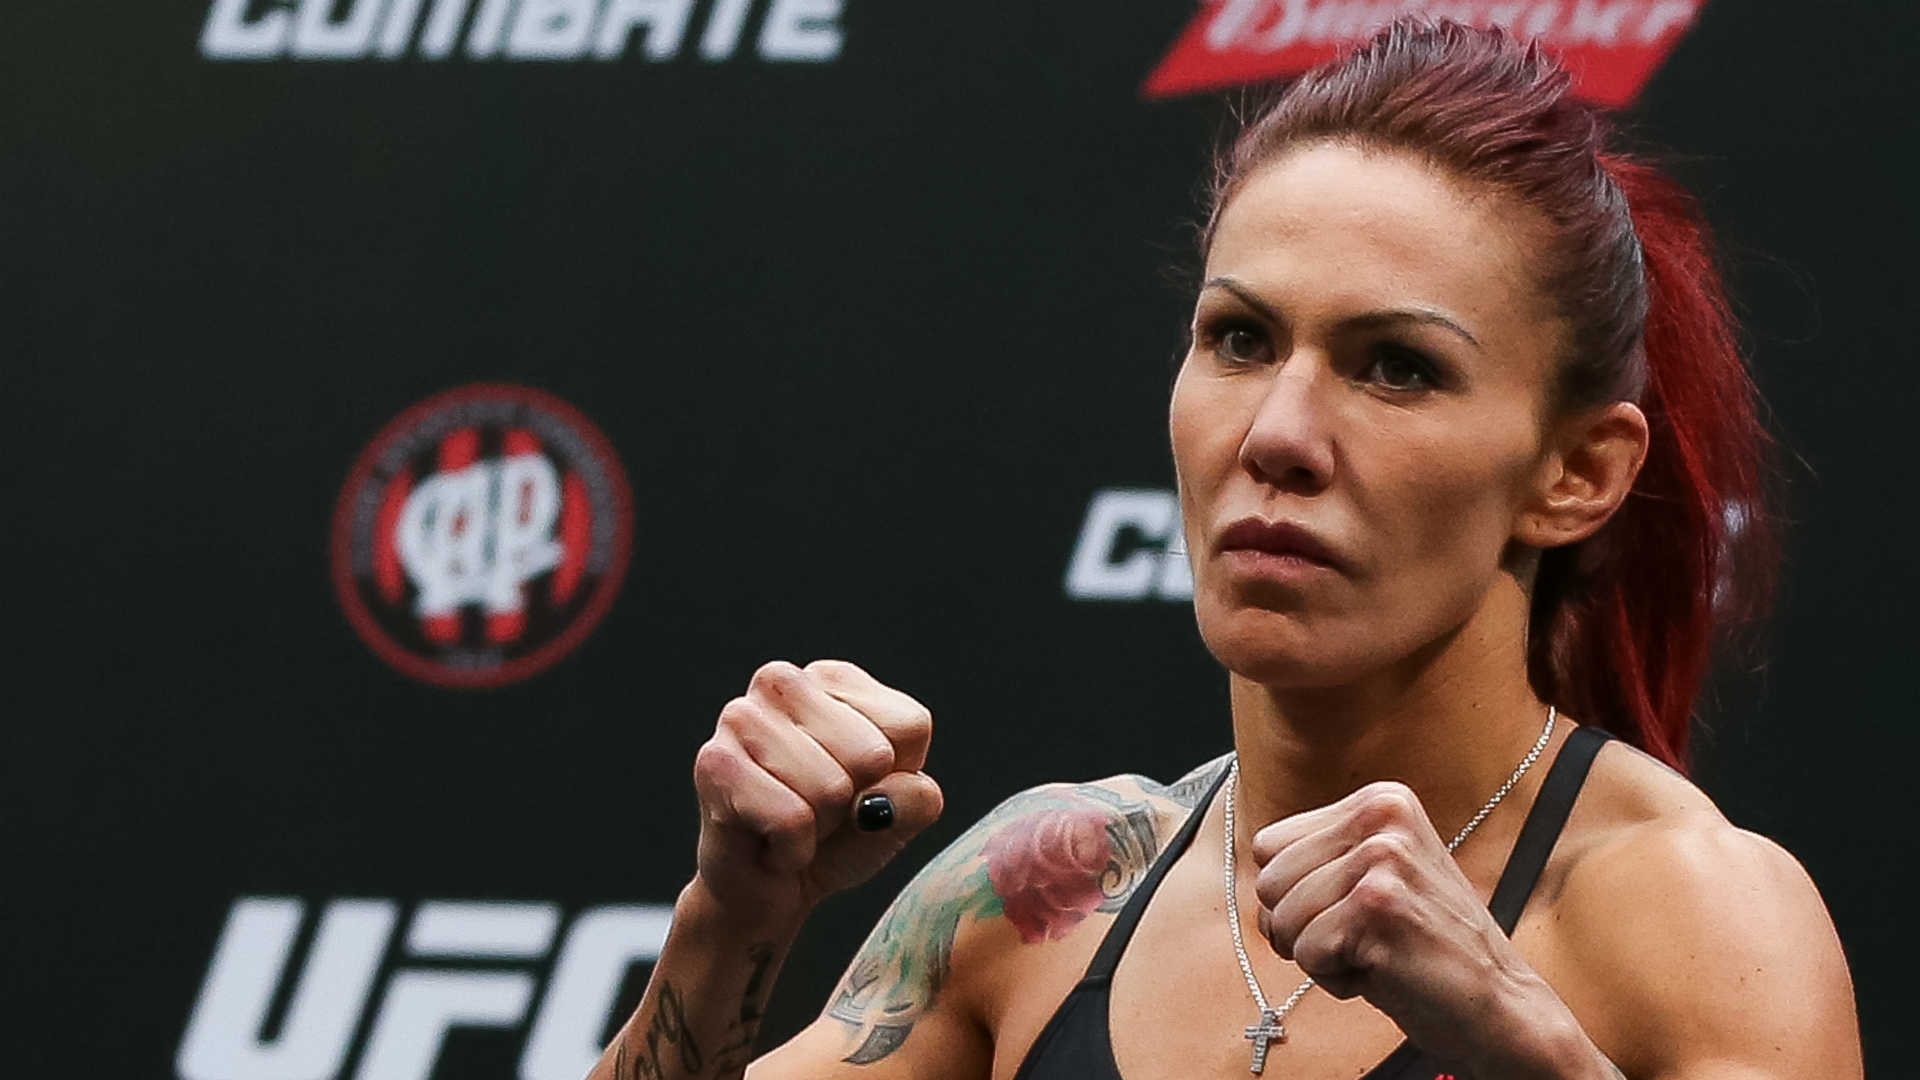 Cris 'Cyborg' Justino responds to Ronda Rousey's trainer about potential fight